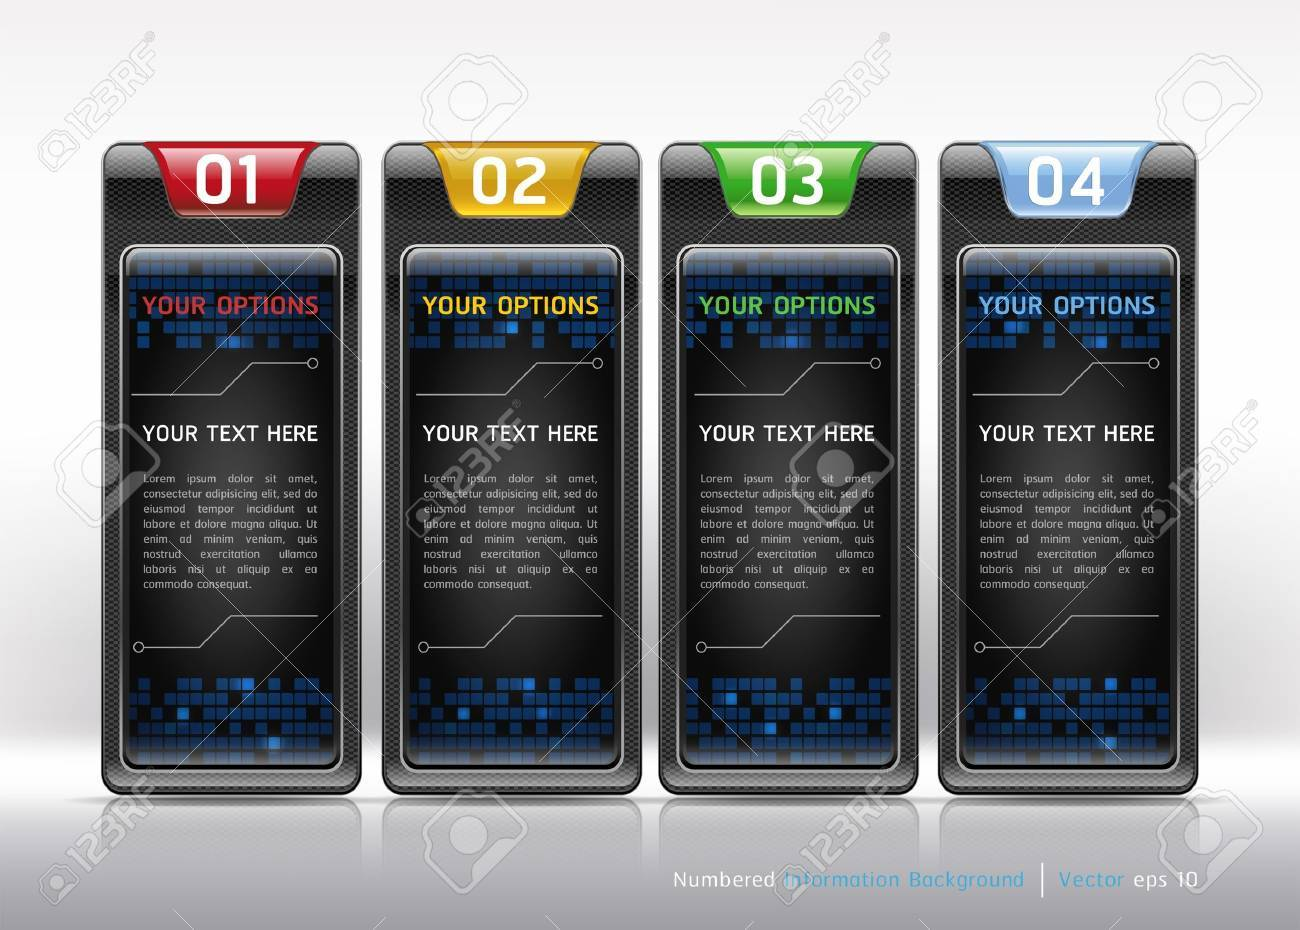 Colorful Buttons Website Style Number Options Banner   Card Background  Vector illustration Stock Vector - 18759128